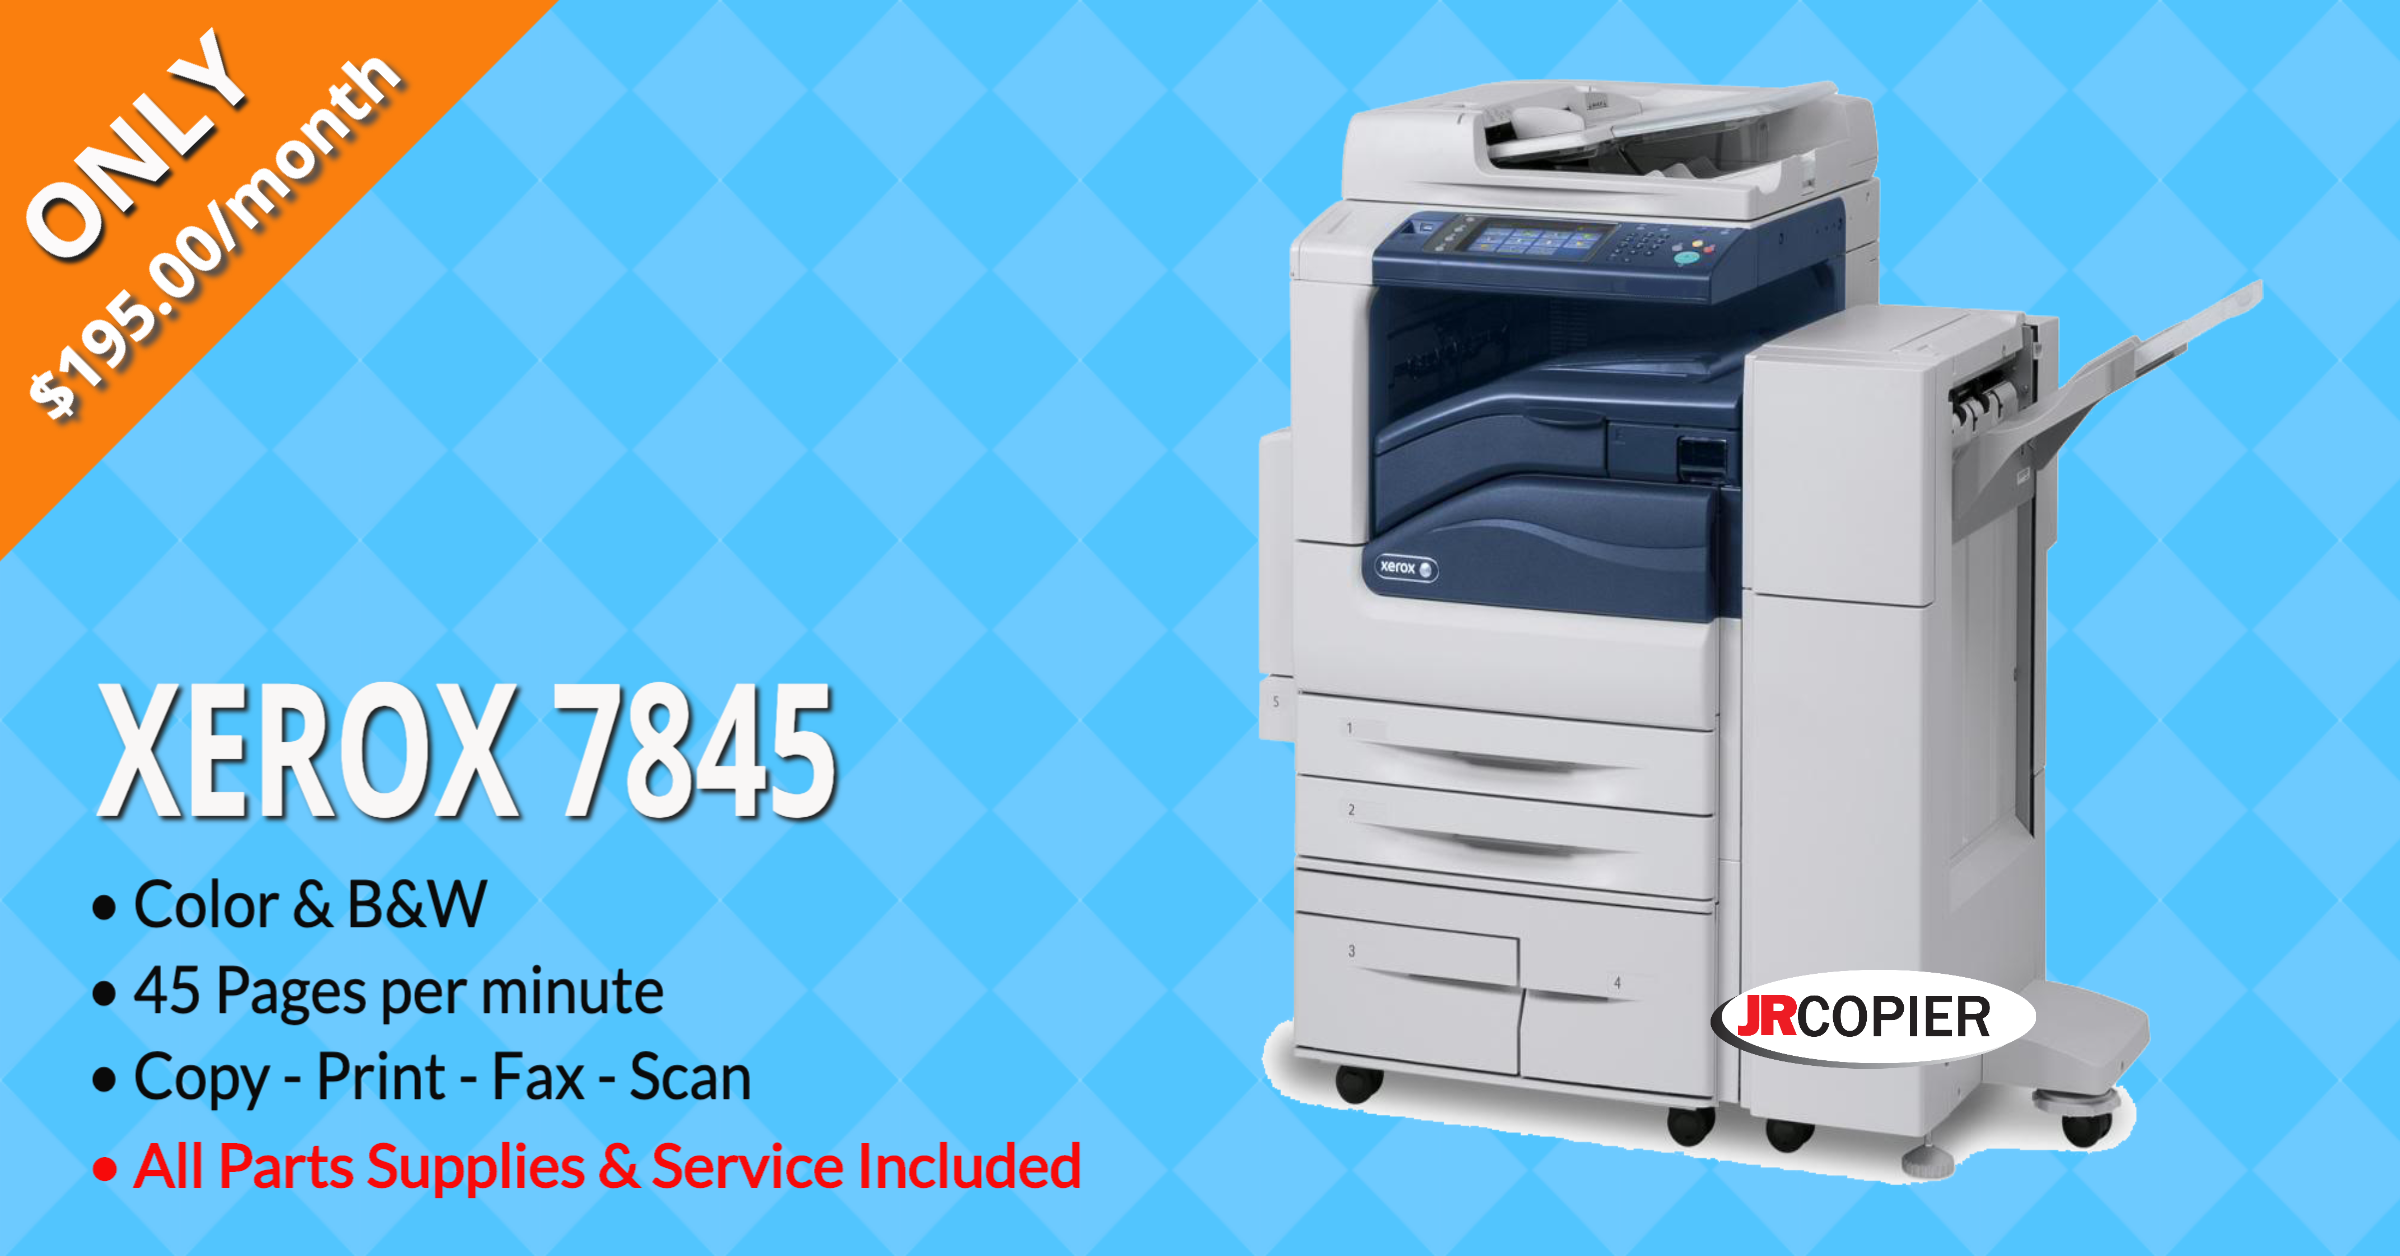 Copy Machine Companies 33023, 33025, 33027, 33029